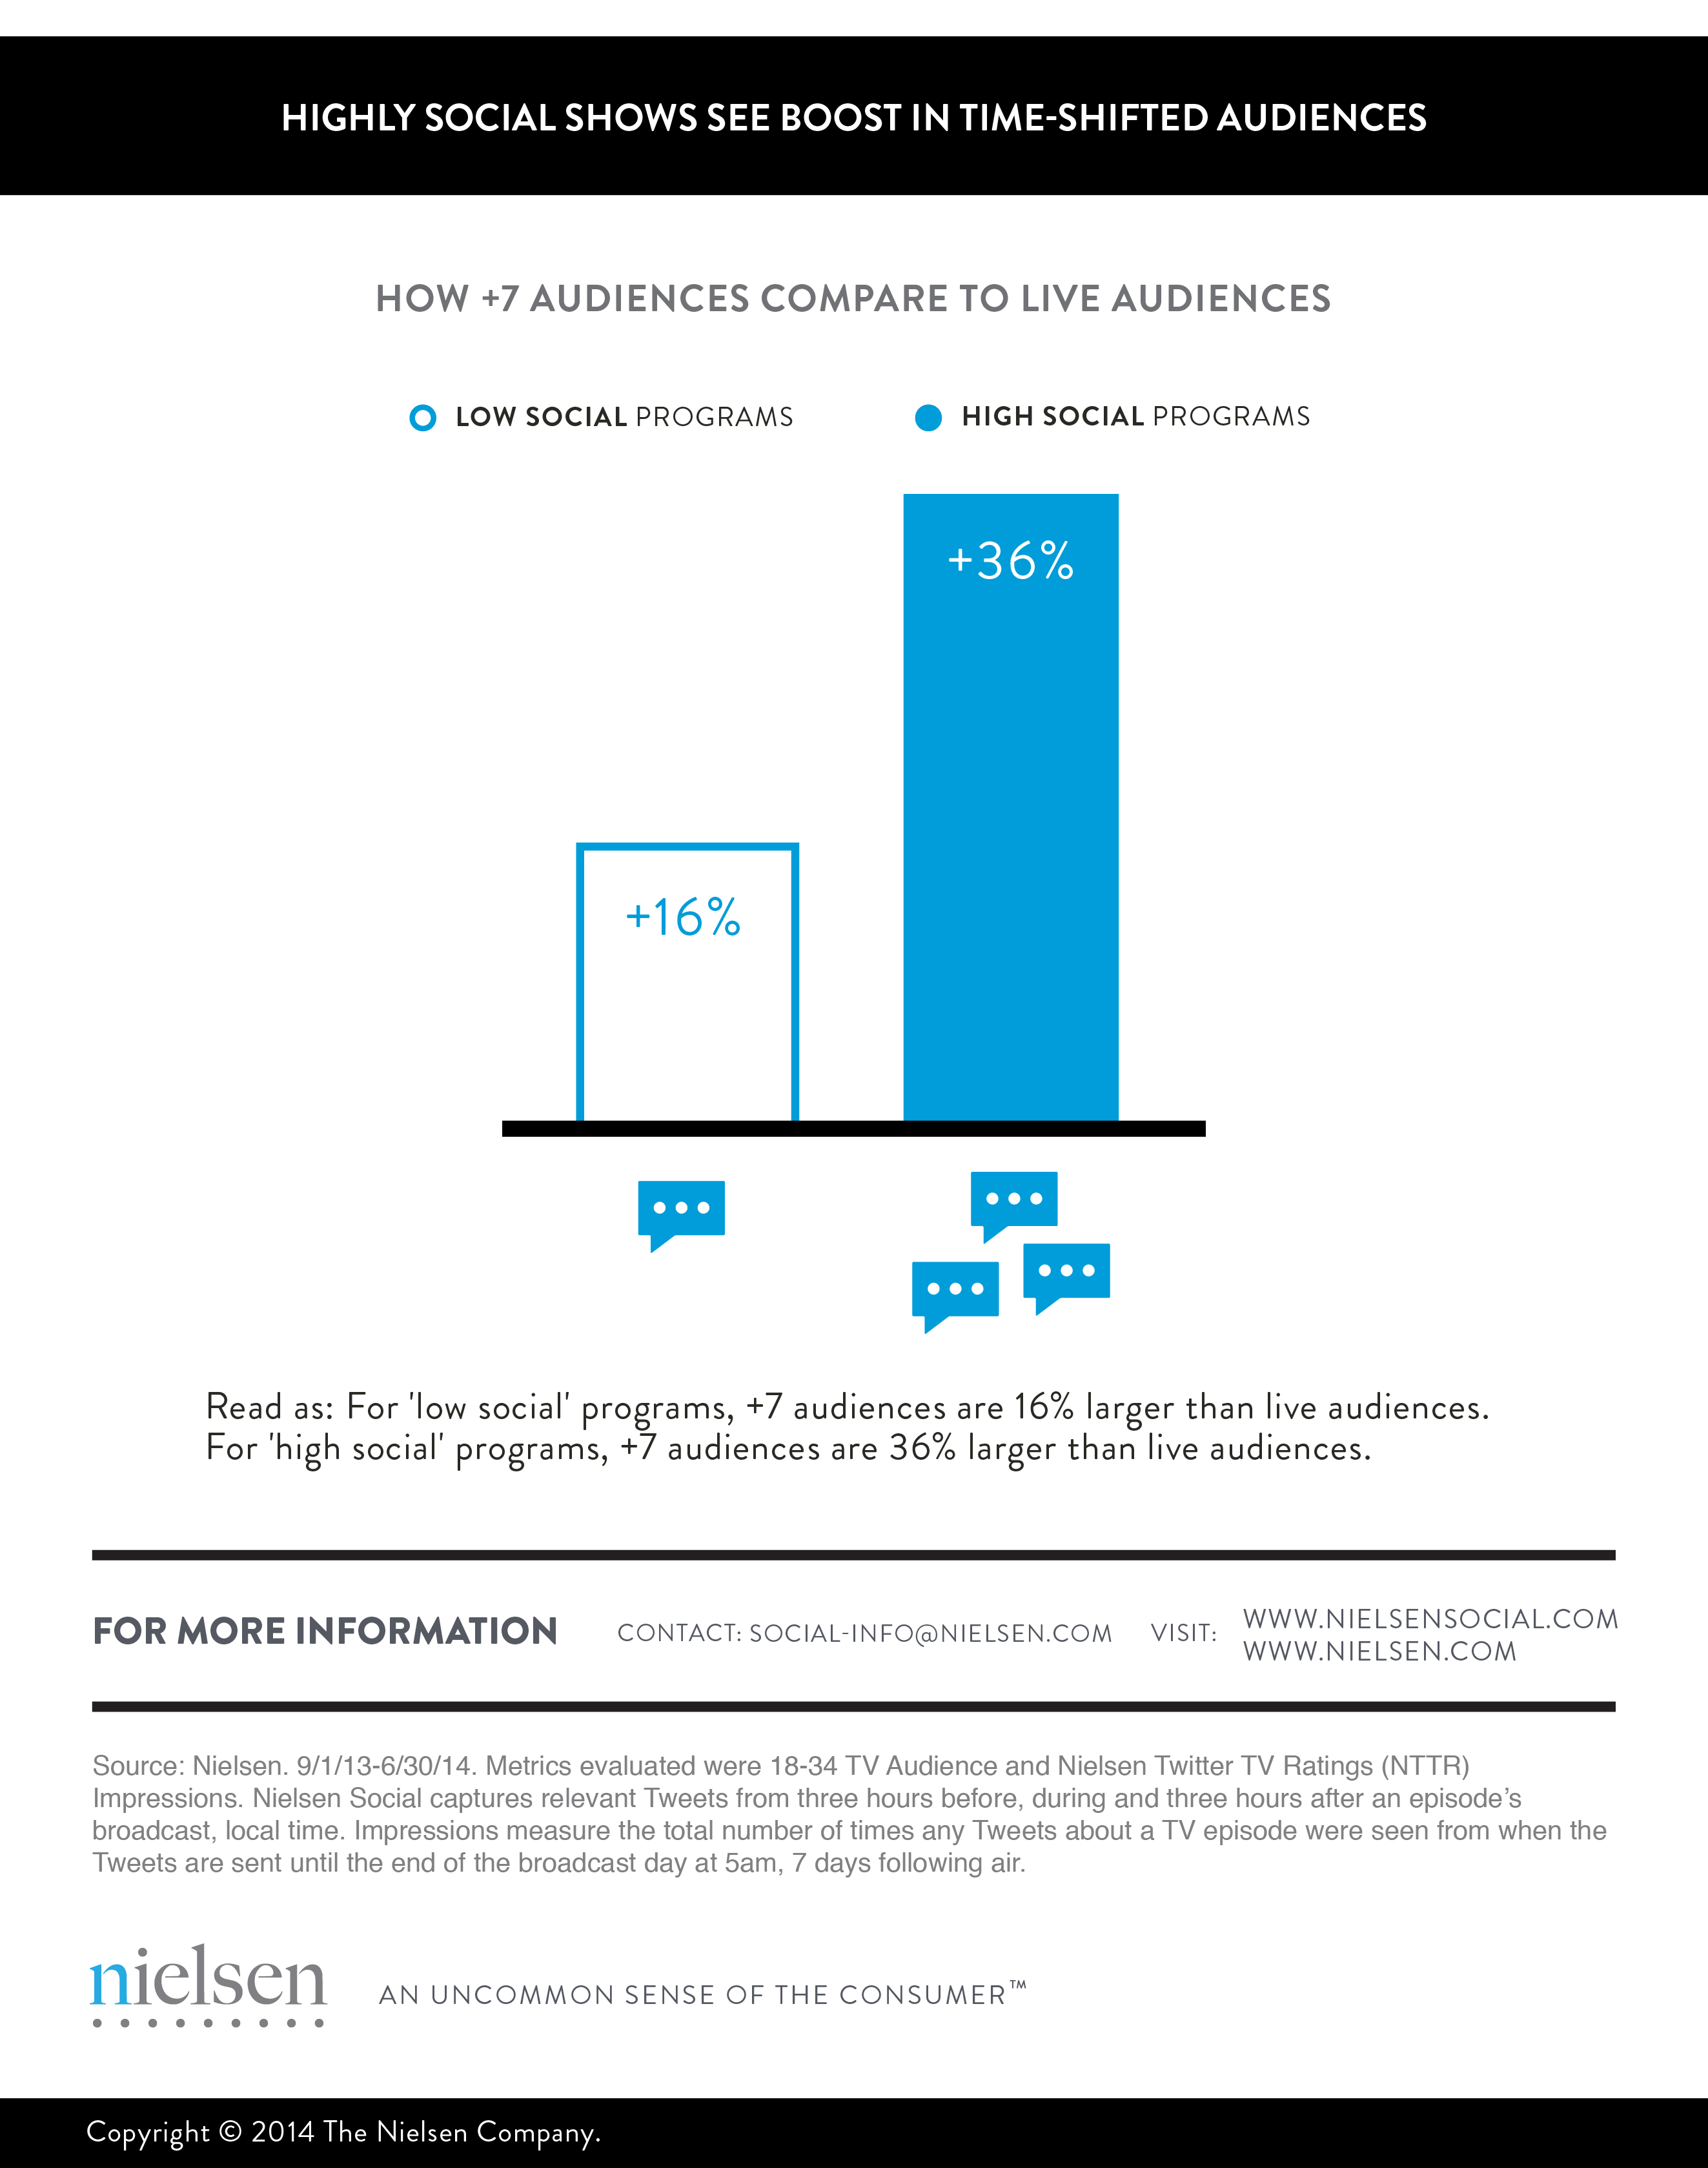 Highly social shows see boost in time-shifted audience_nielsensocial